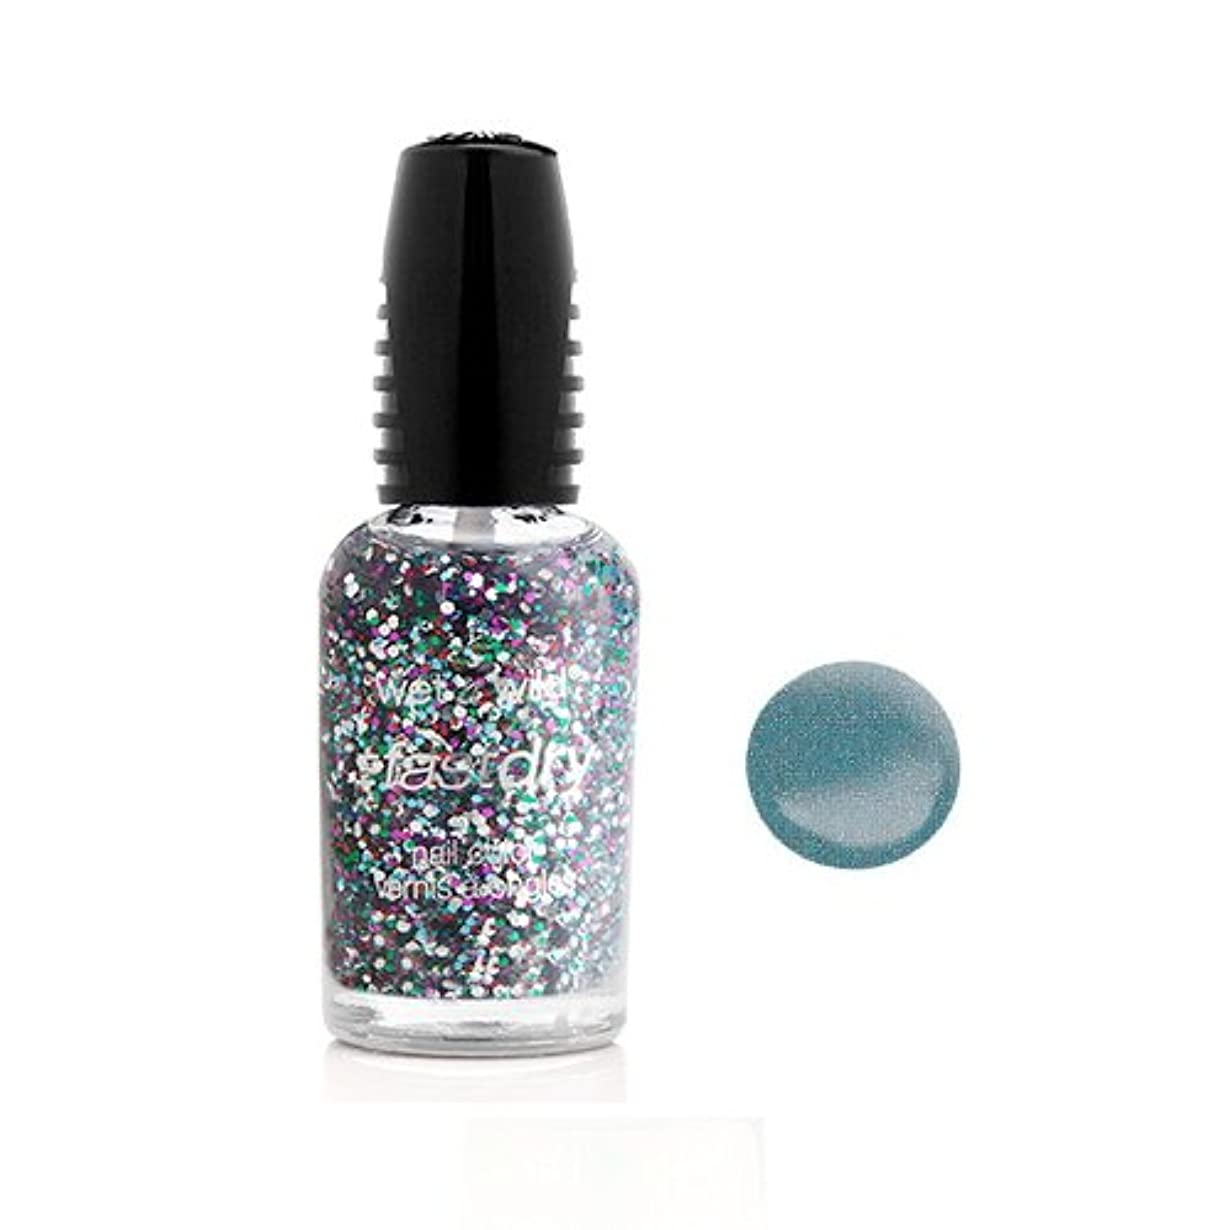 (3 Pack) WET N WILD Fastdry Nail Color - Blue Wants To Be A Millionaire (DC) (並行輸入品)